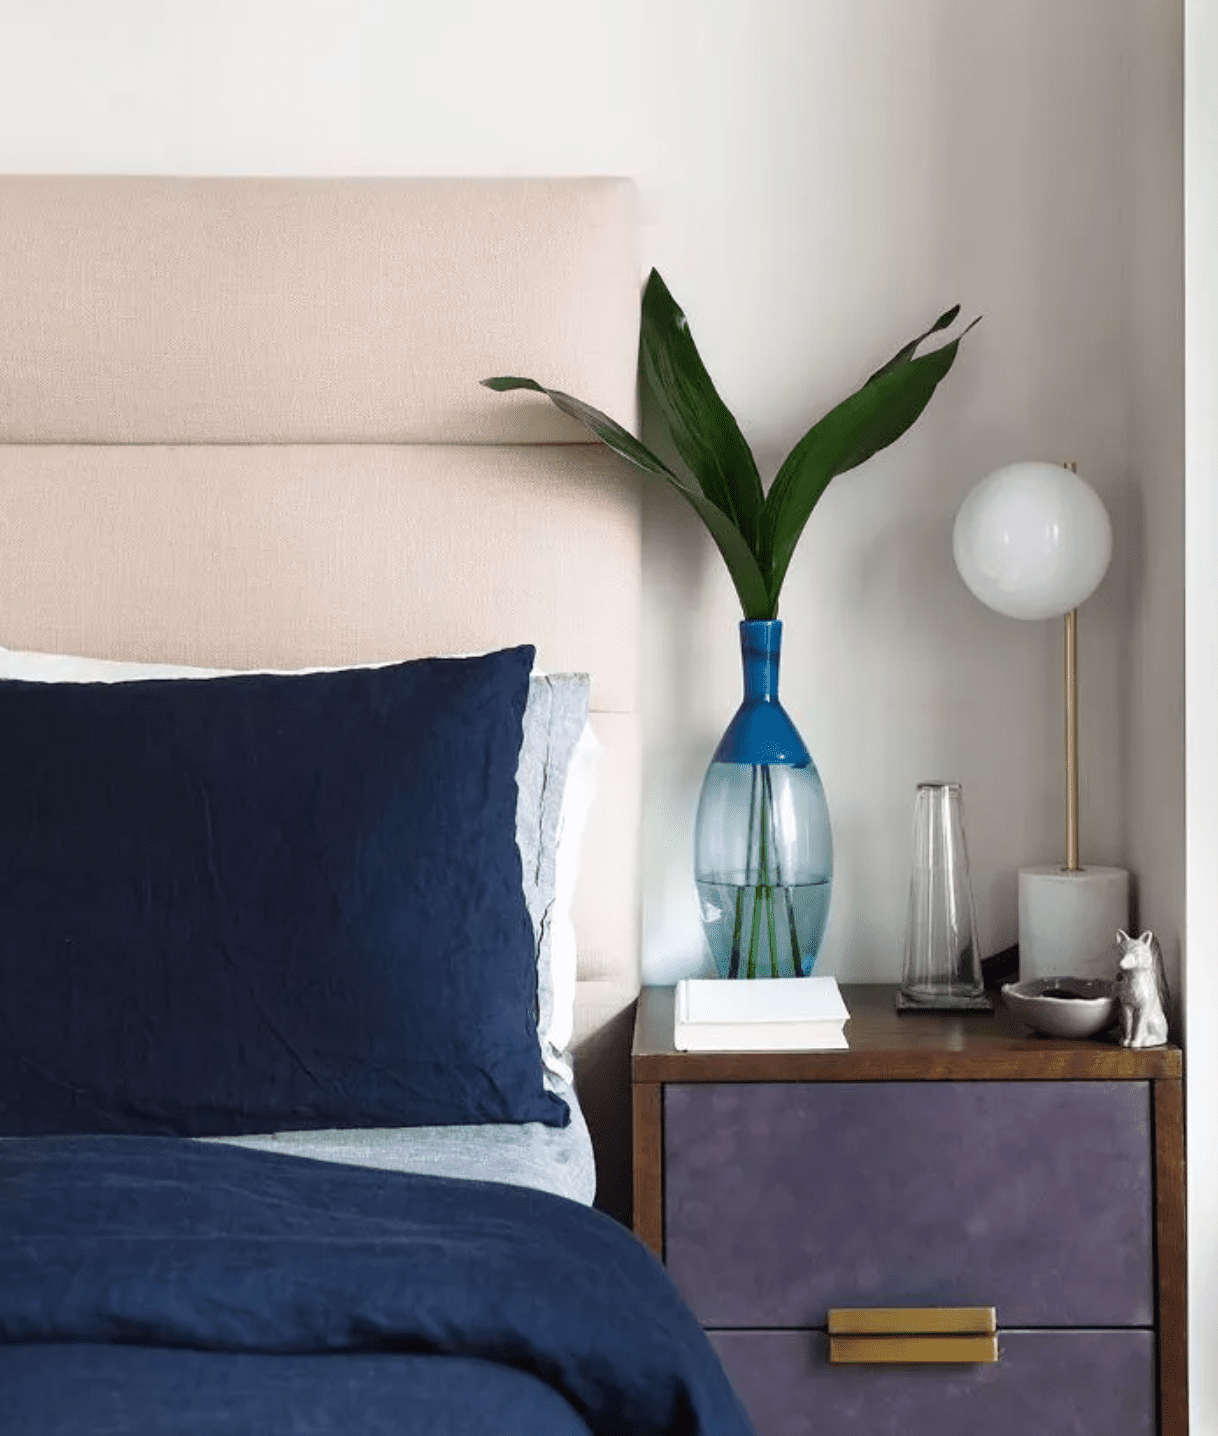 Bedroom unified by blue and purple tones